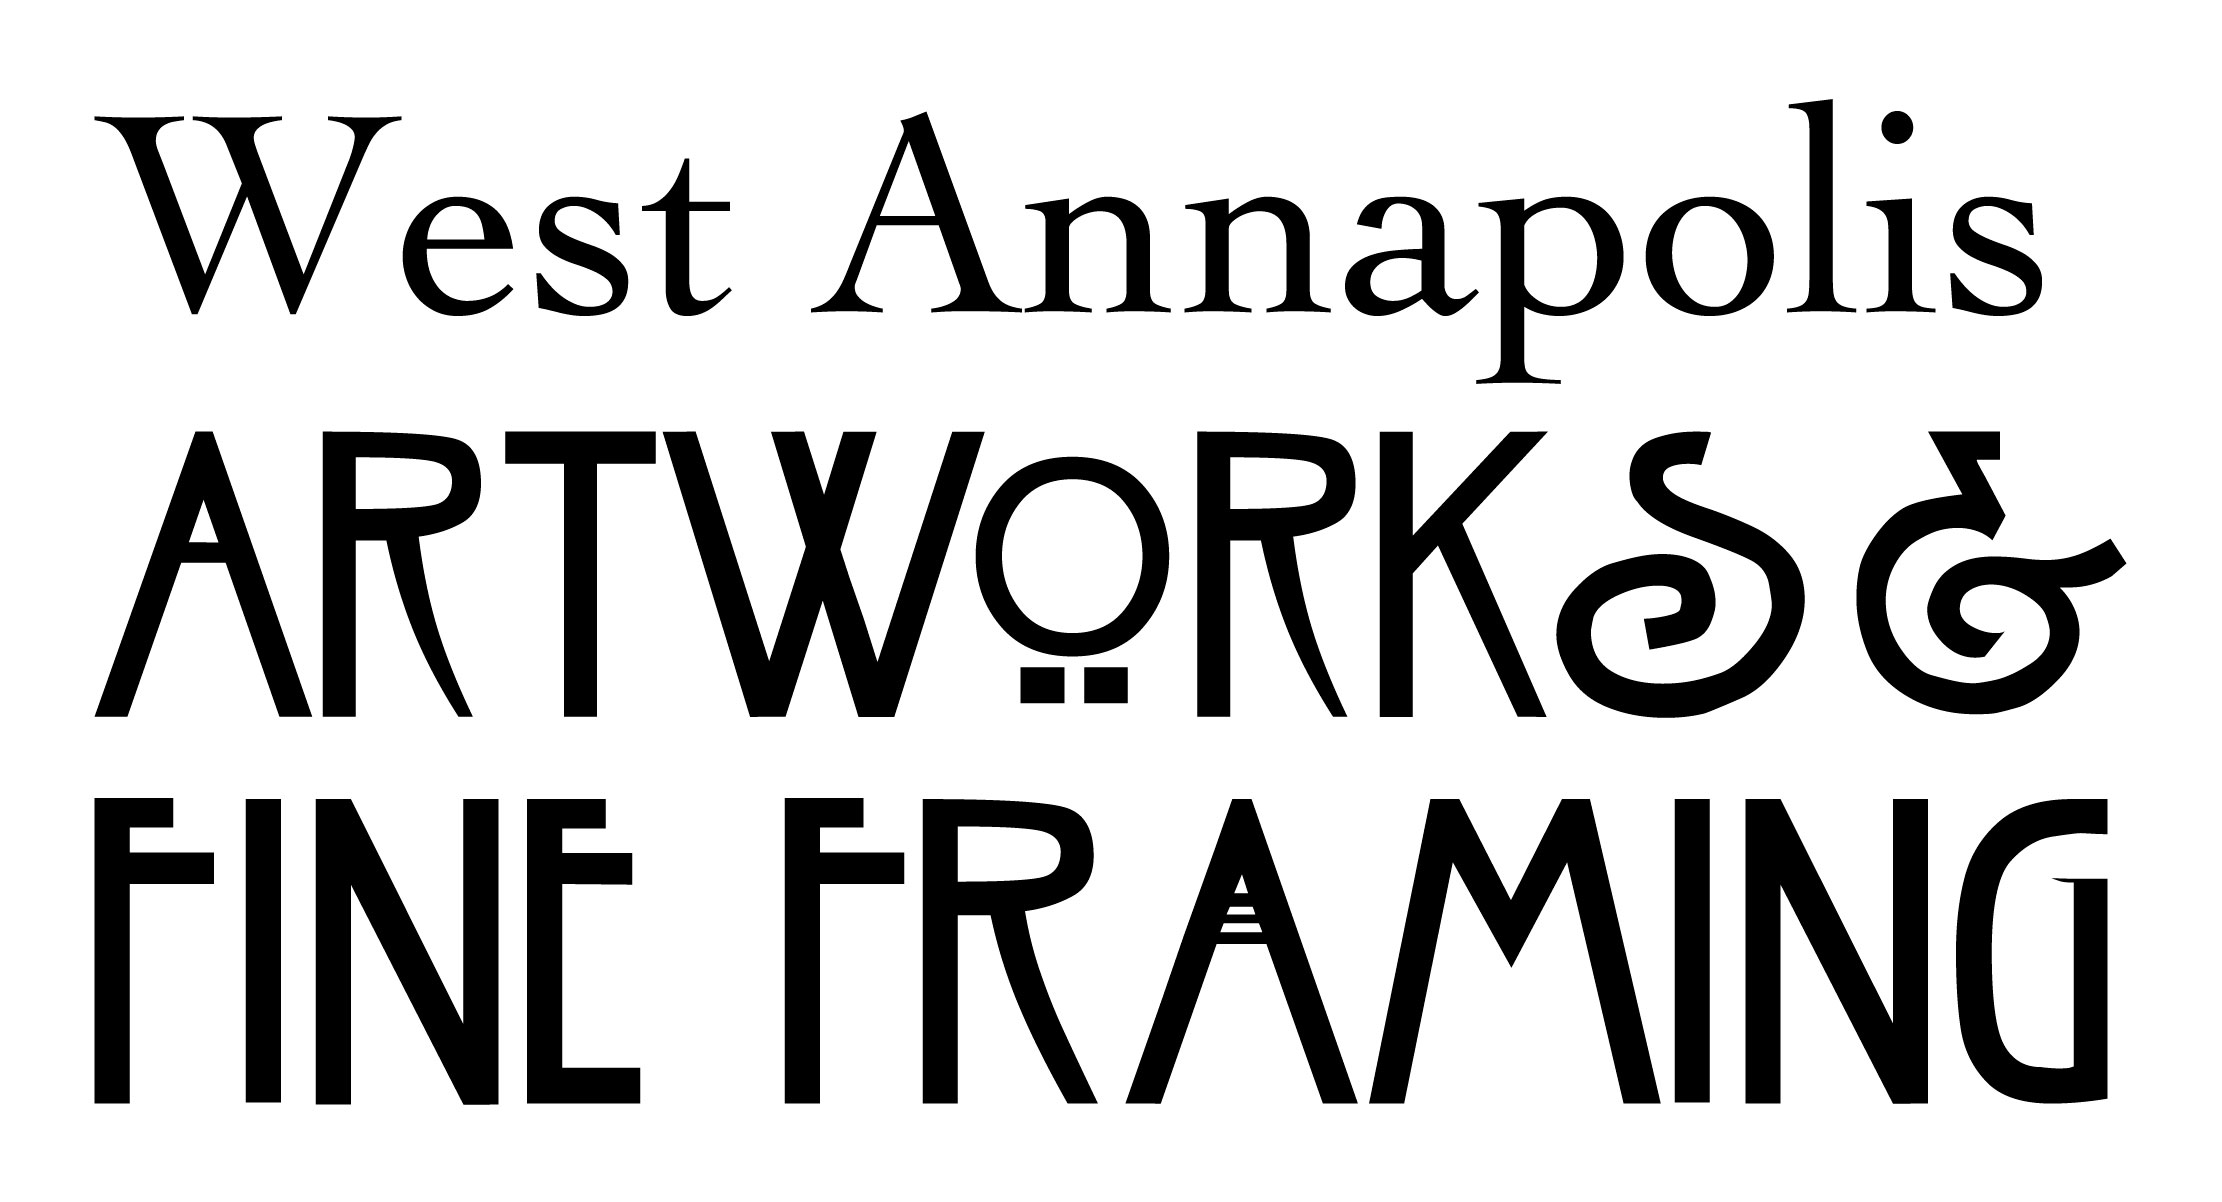 West Annapolis Artworks & Fine Framing